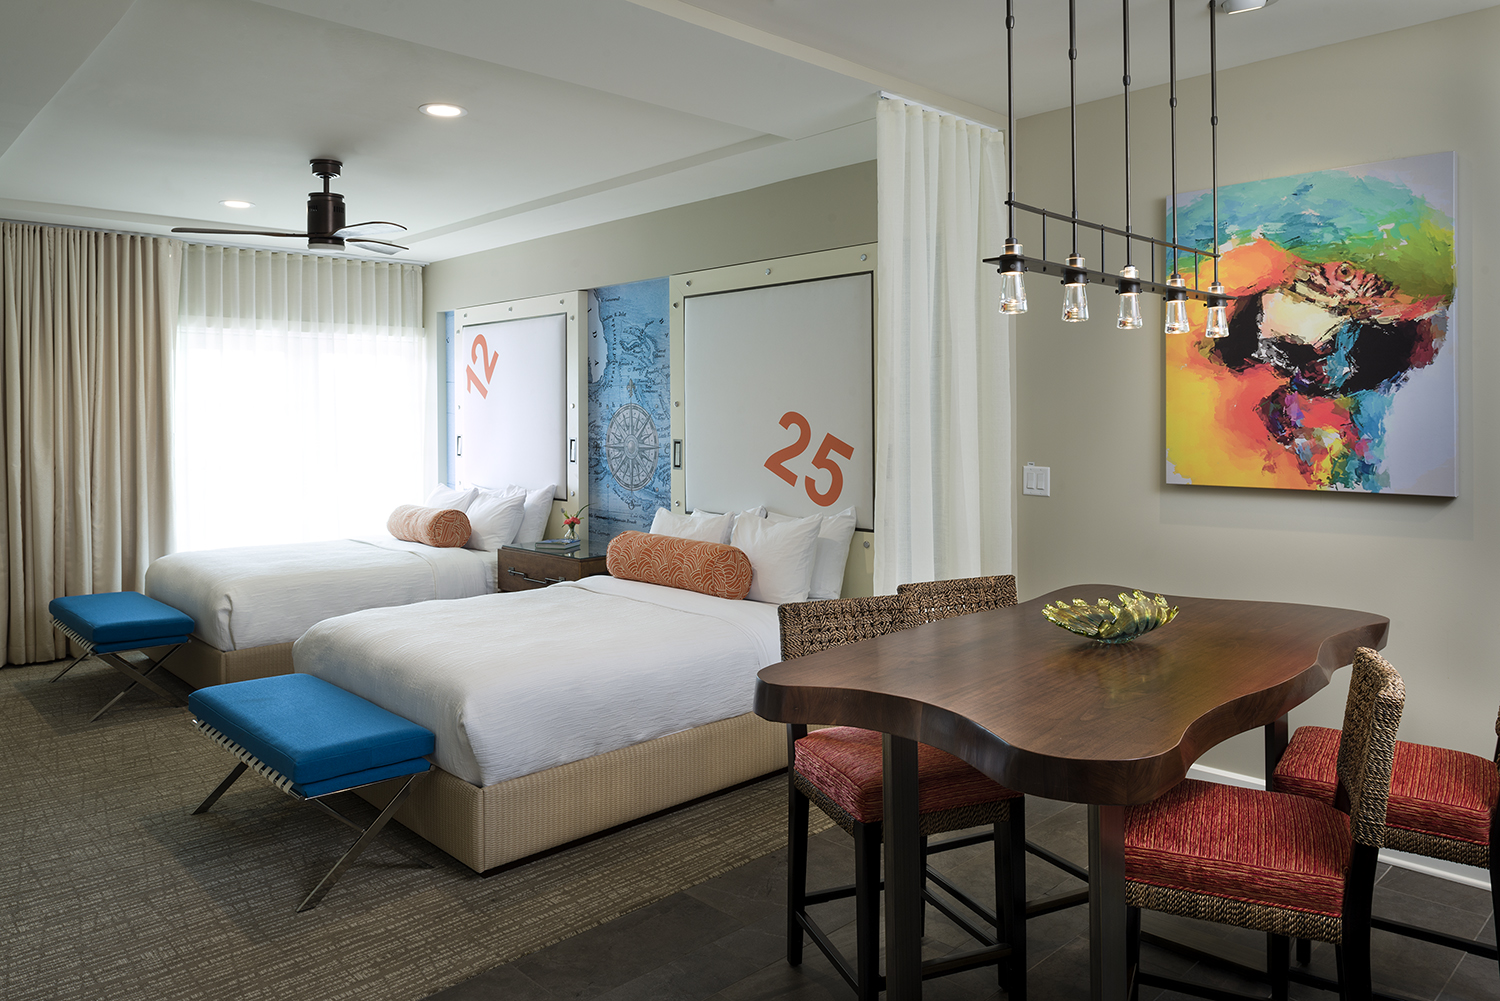 Master Suite at Margaritaville Island Hotel, in Pigeon Forge, TN, Designed by Design Poole, Inc in Winter Park Florida